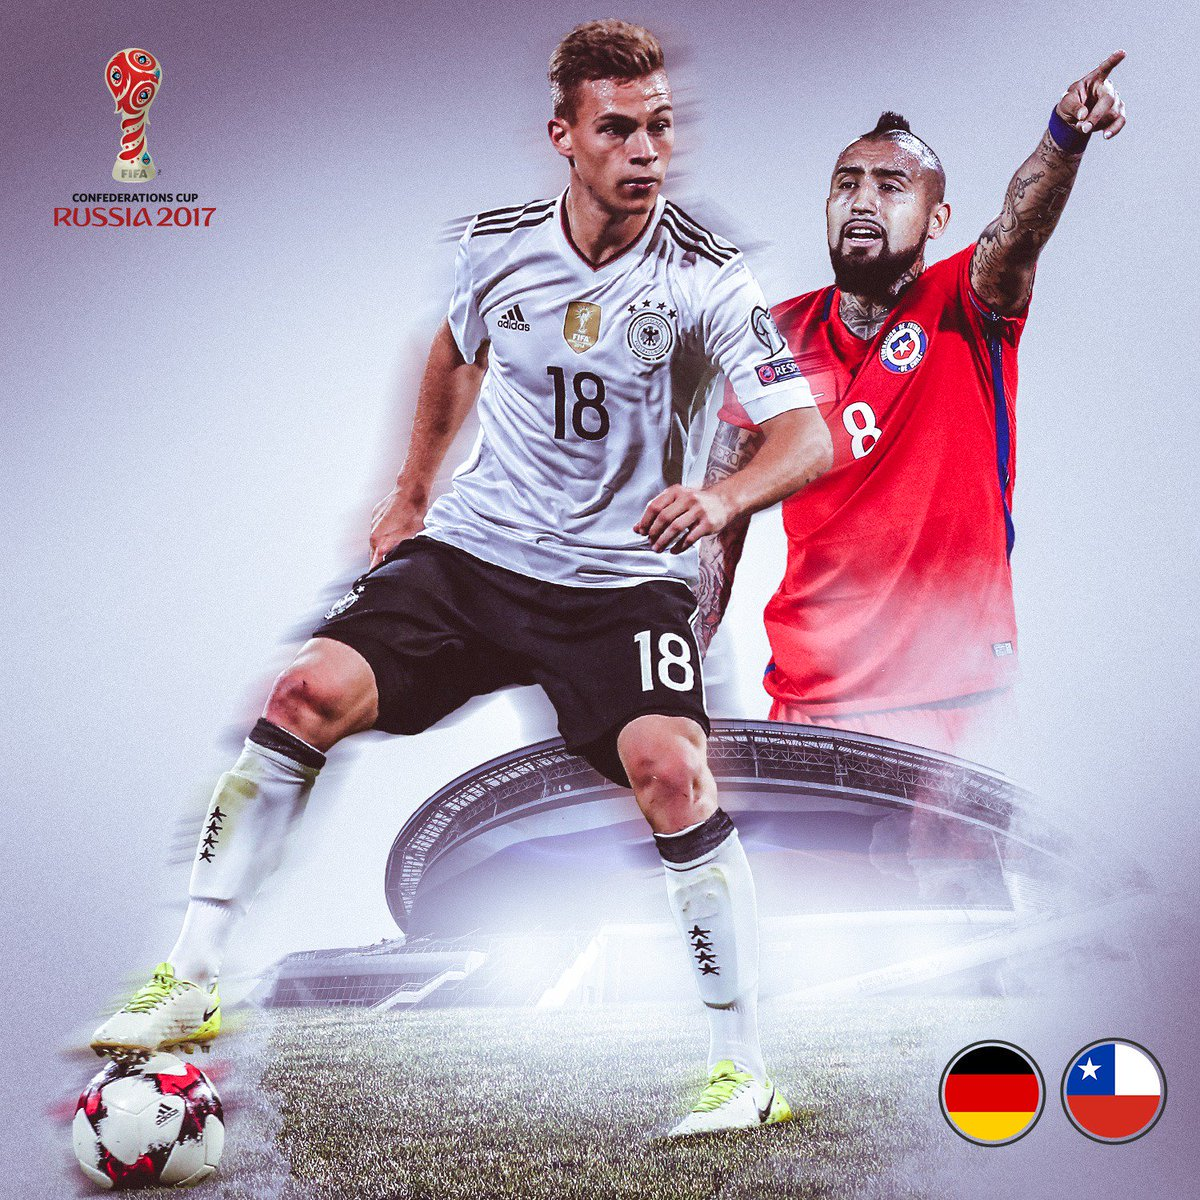 The Kid 🇩🇪 vs. The King 🇨🇱 ! Watch #KIMMICH and @kingarturo23 square o...